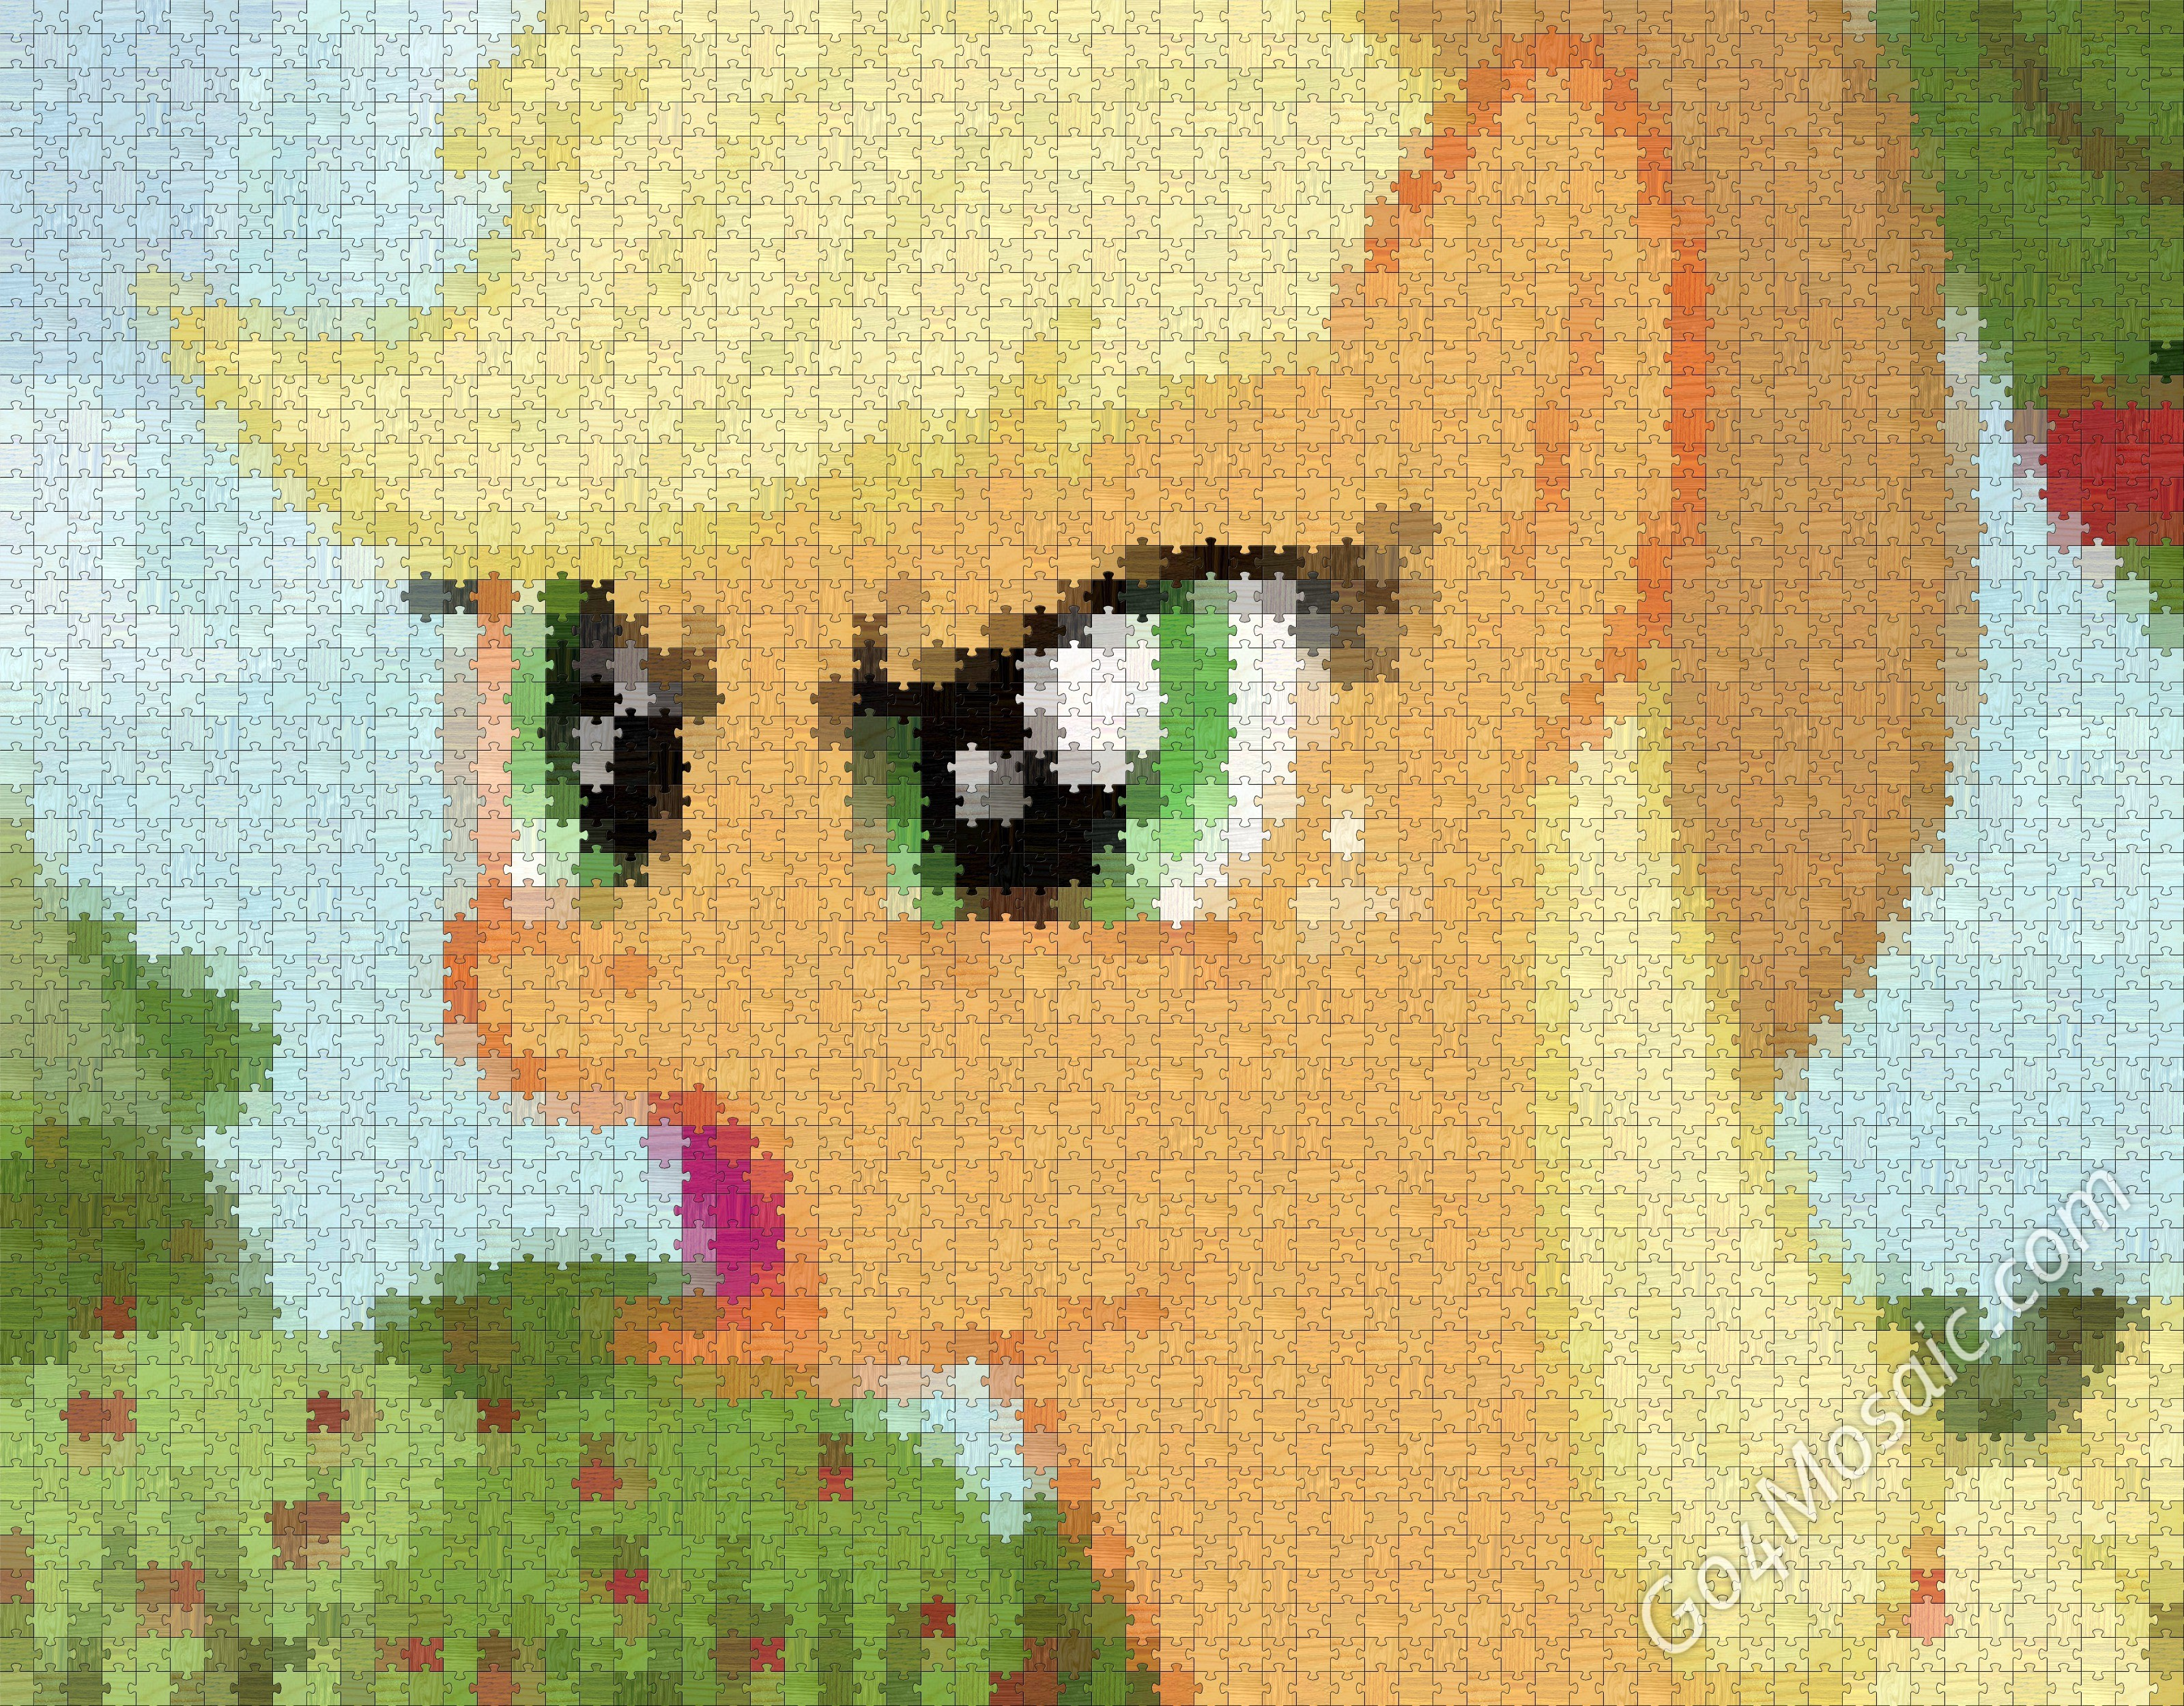 Applejack mosaic from Wooden Jigsaw